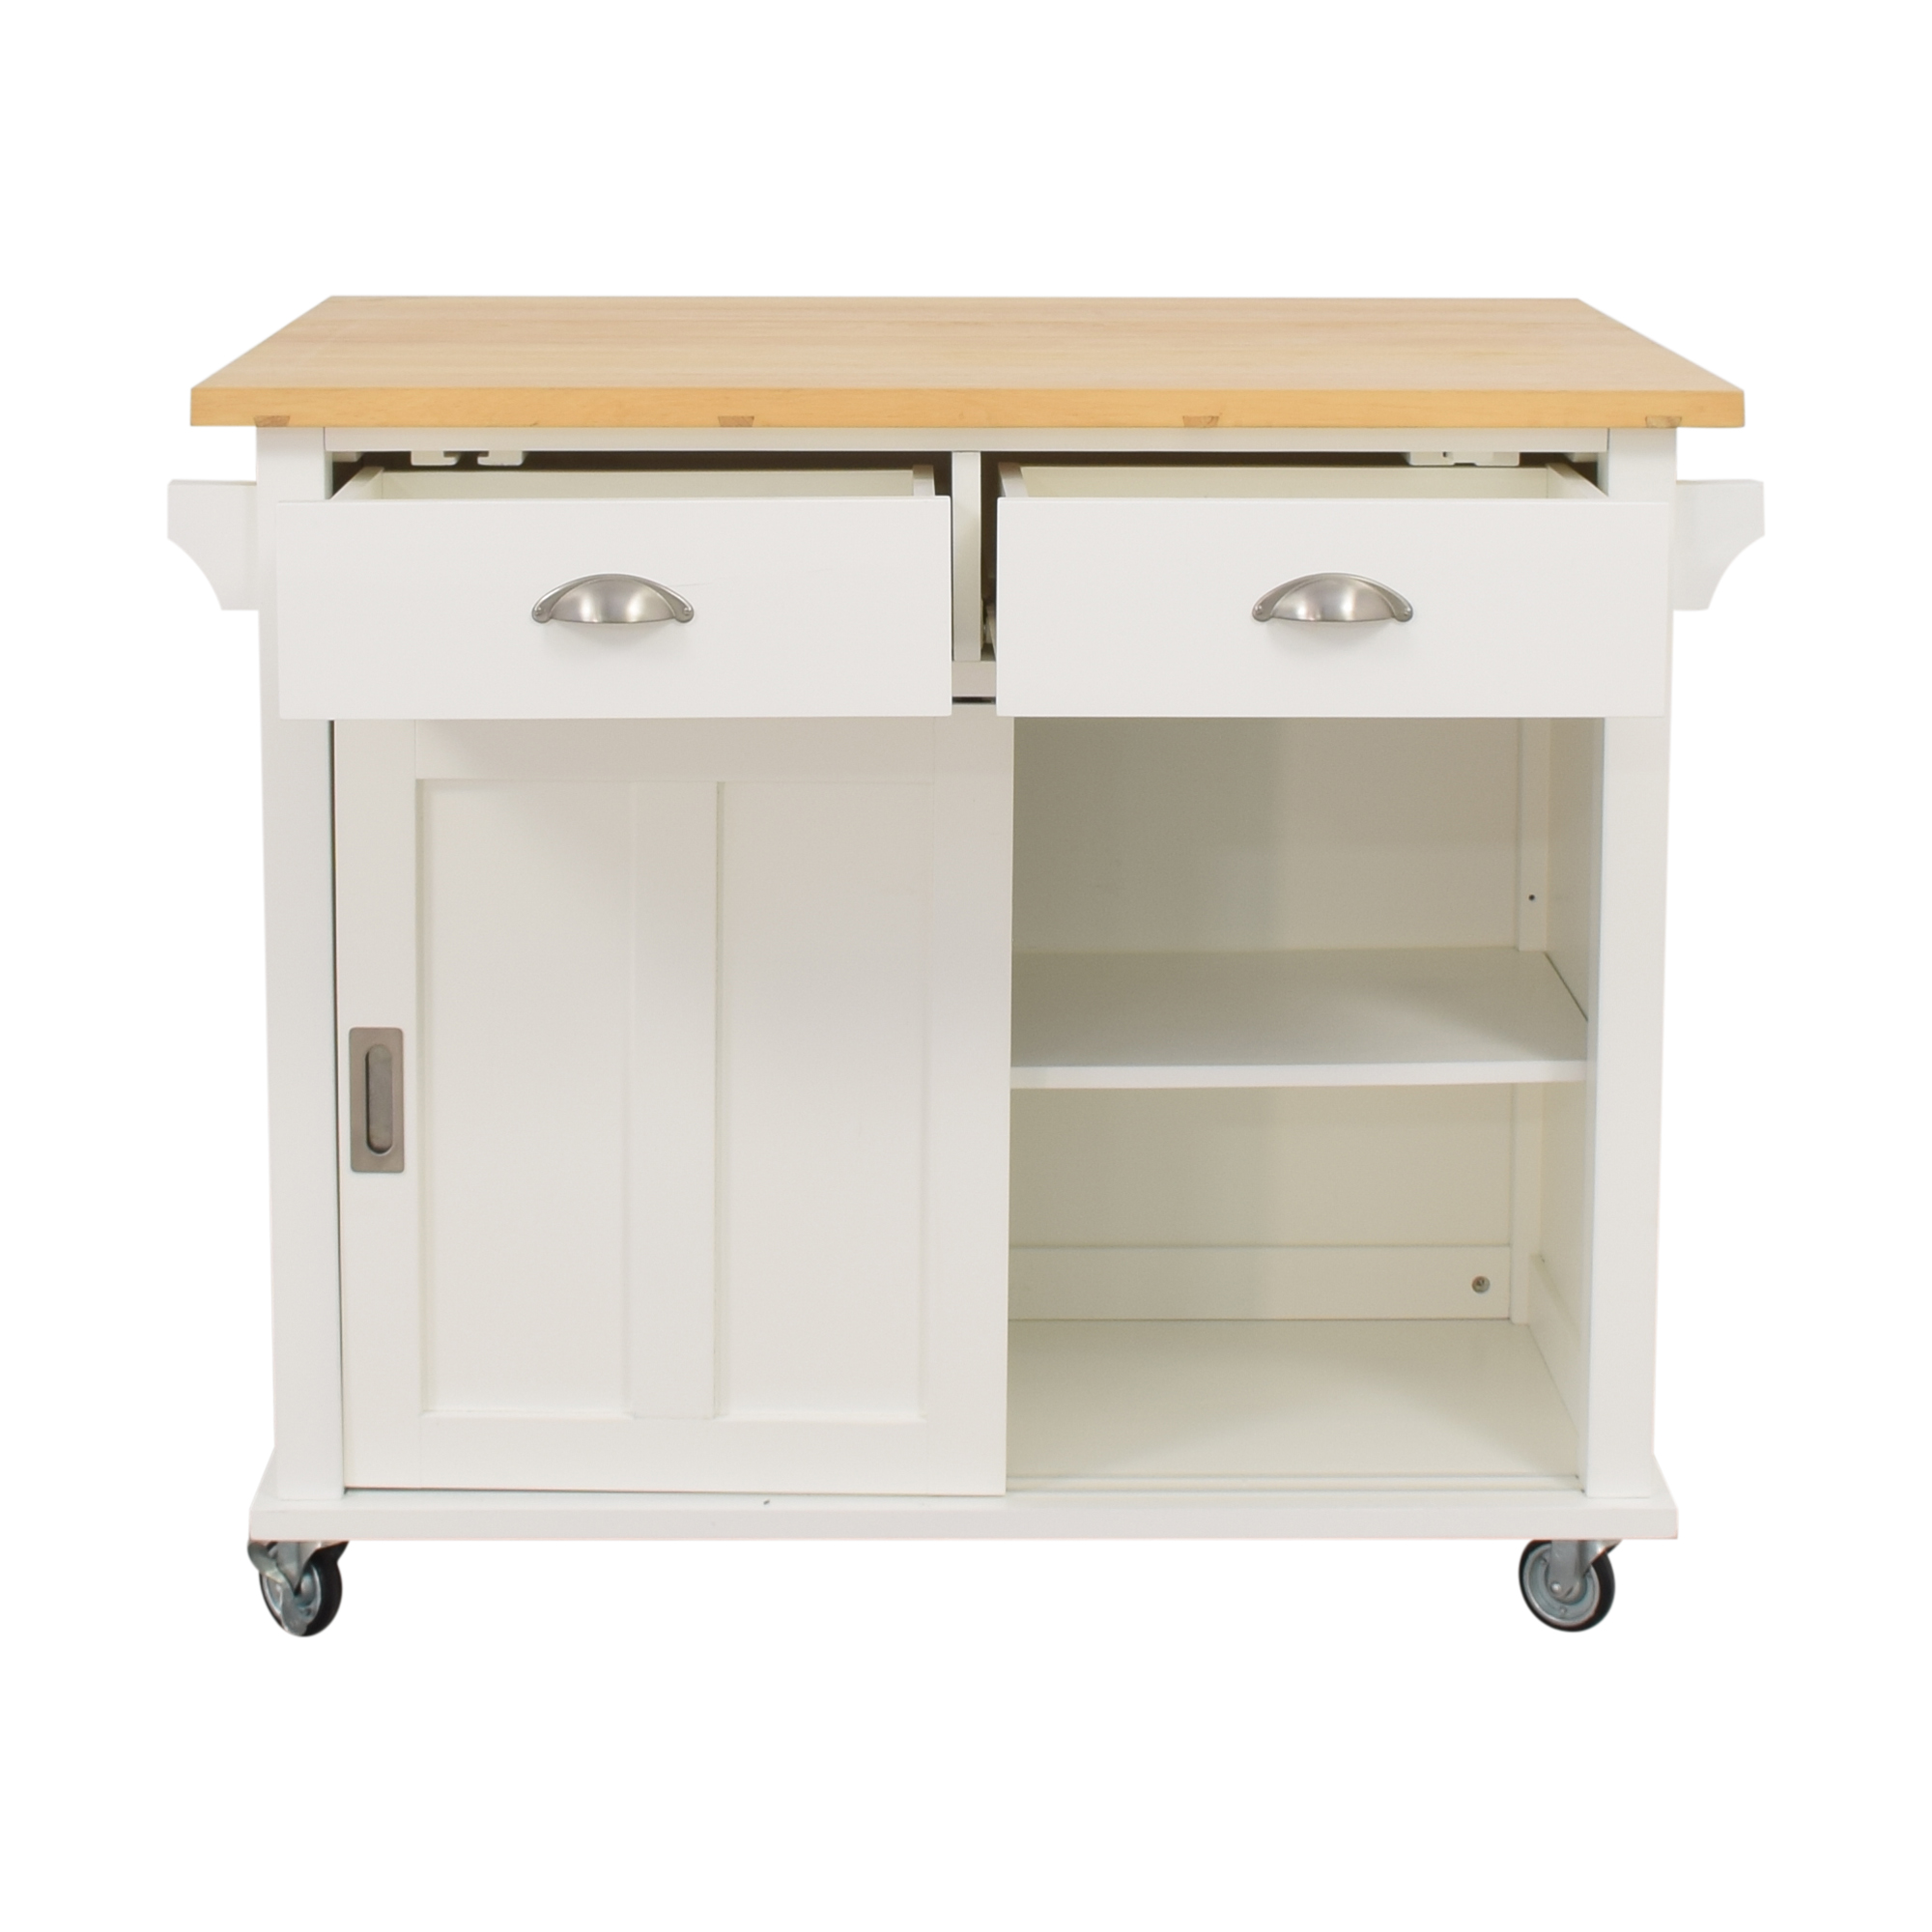 buy Crate & Barrel Belmont White Kitchen Island Crate & Barrel Utility Tables